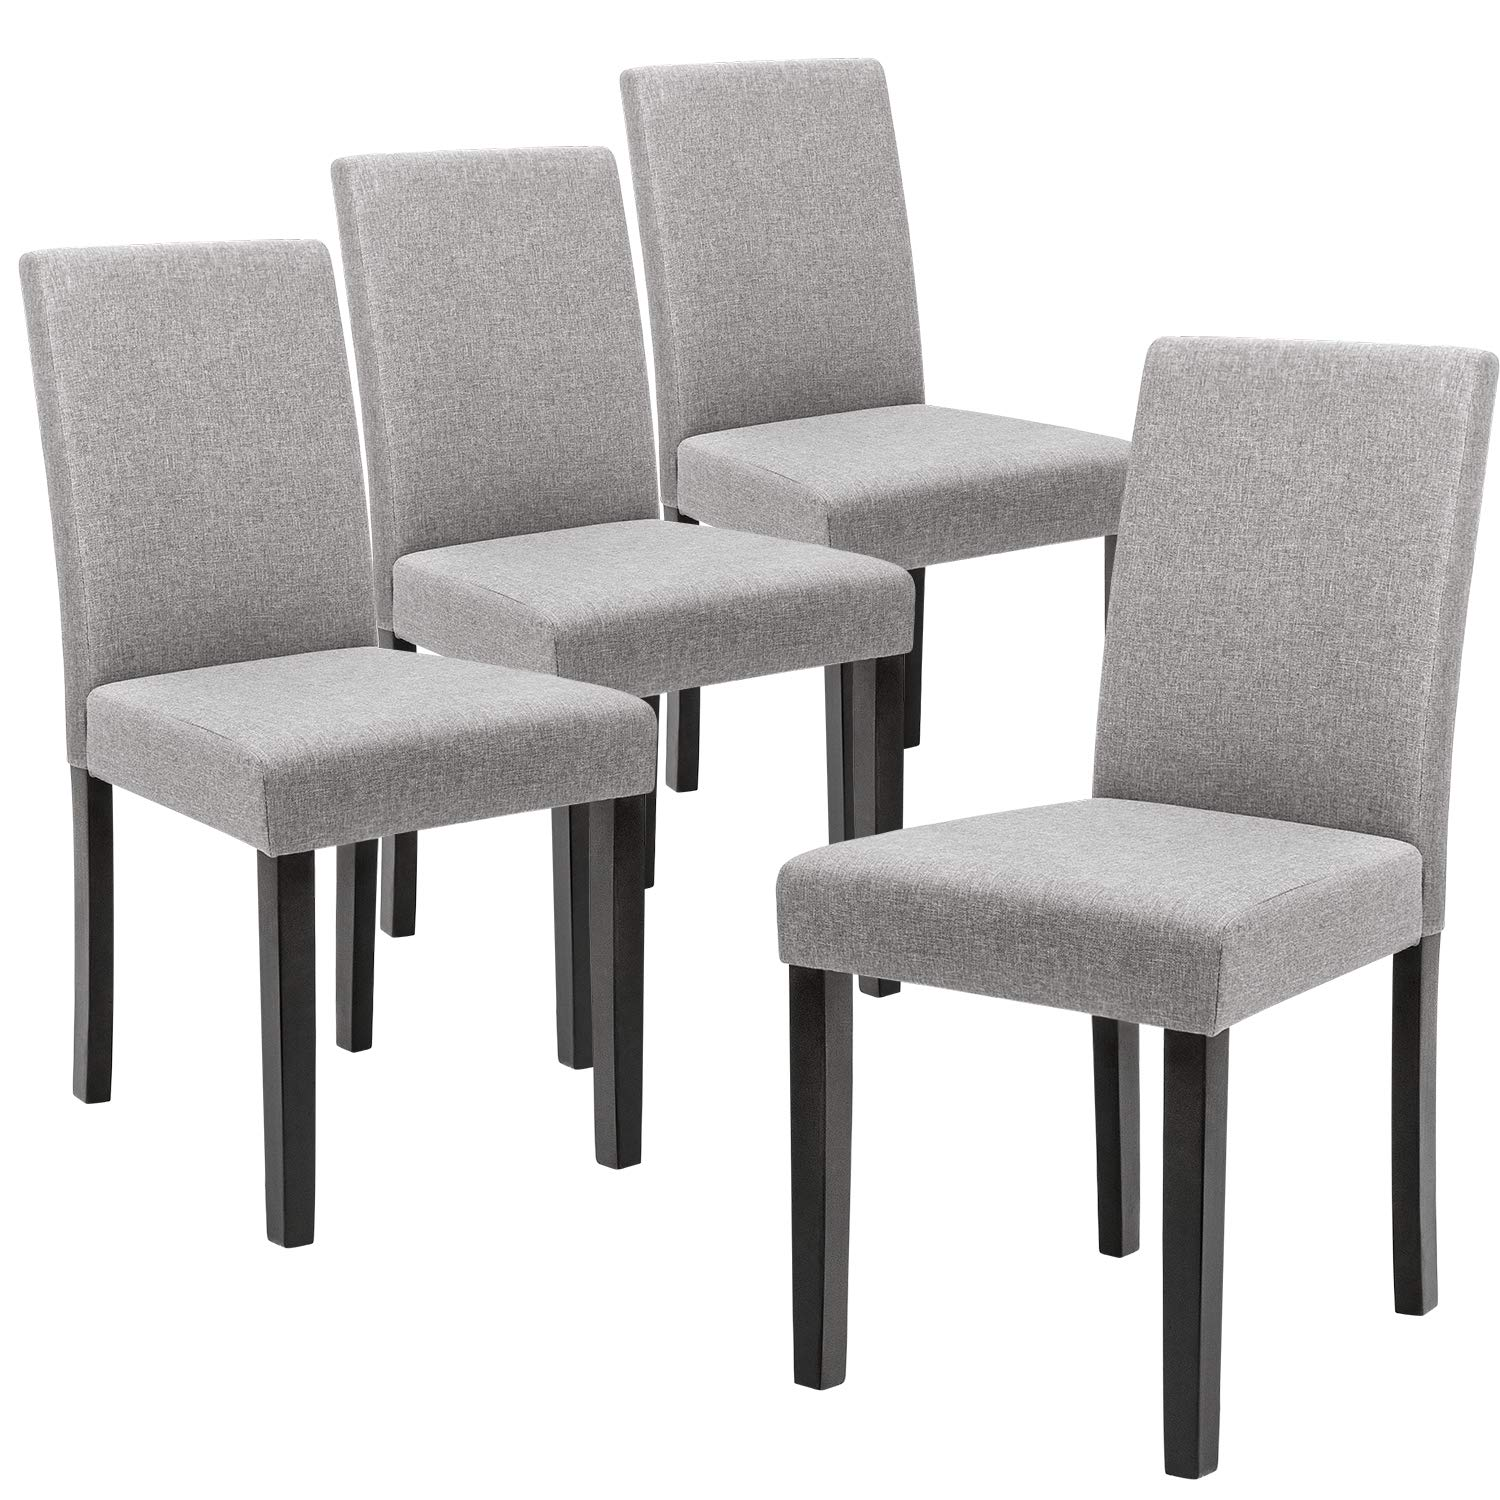 Devoko Fabric Dining Chairs Modern Home Kitchen Side Chair Solid Wood Legs Living Room Chairs Set of 4 (Grey)